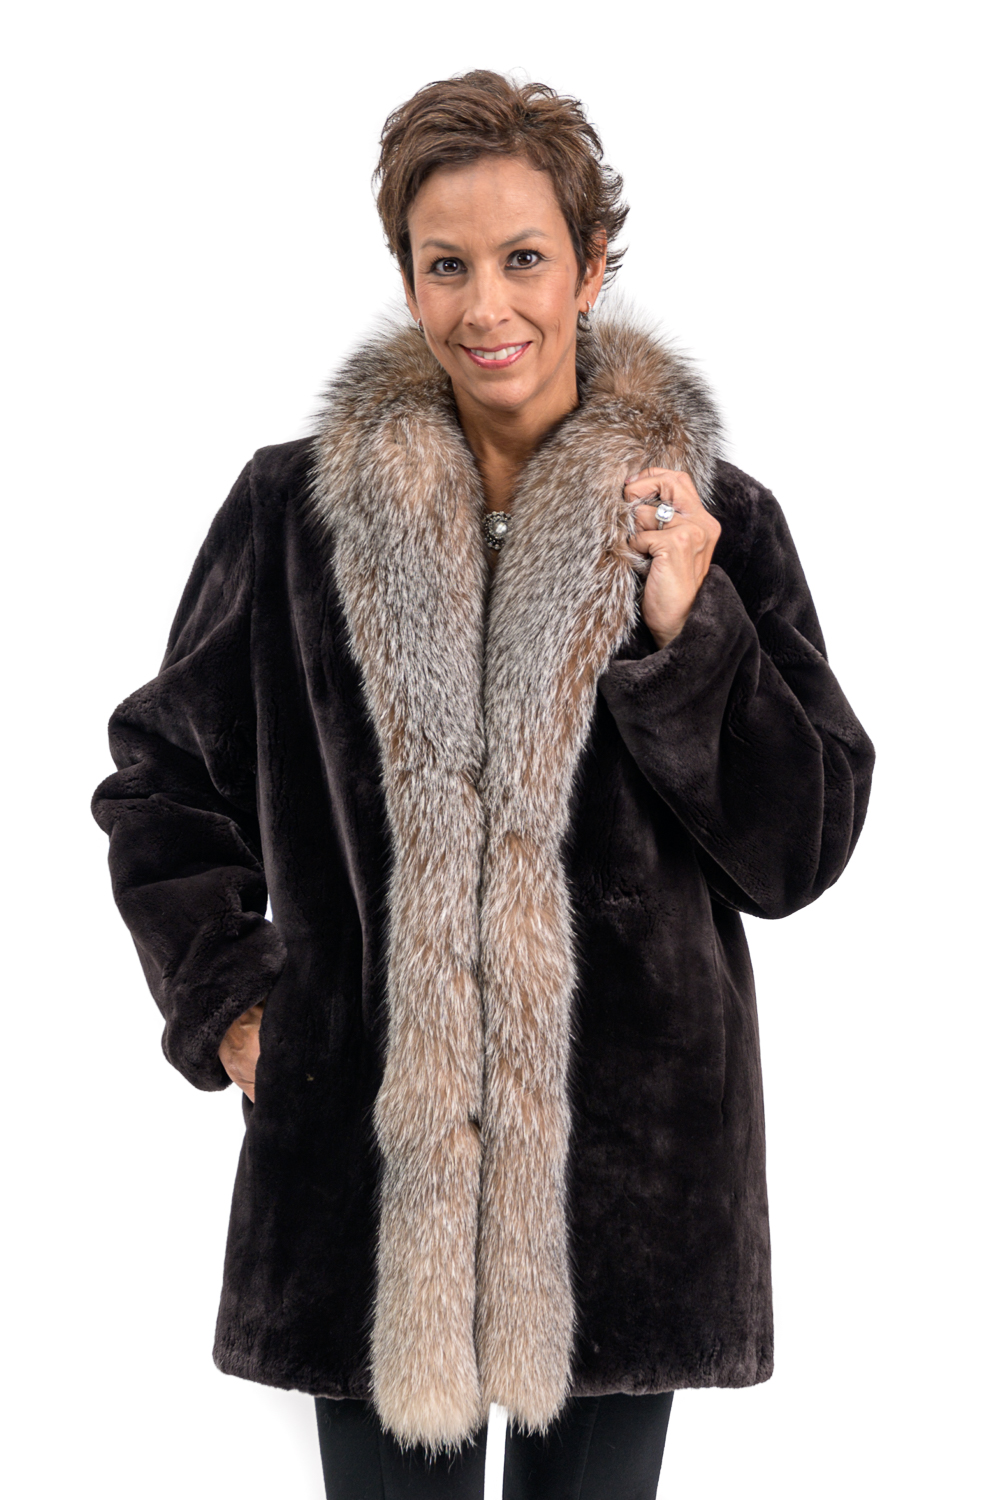 W27 2 Sheared Beaver Fur Jacket with Fox